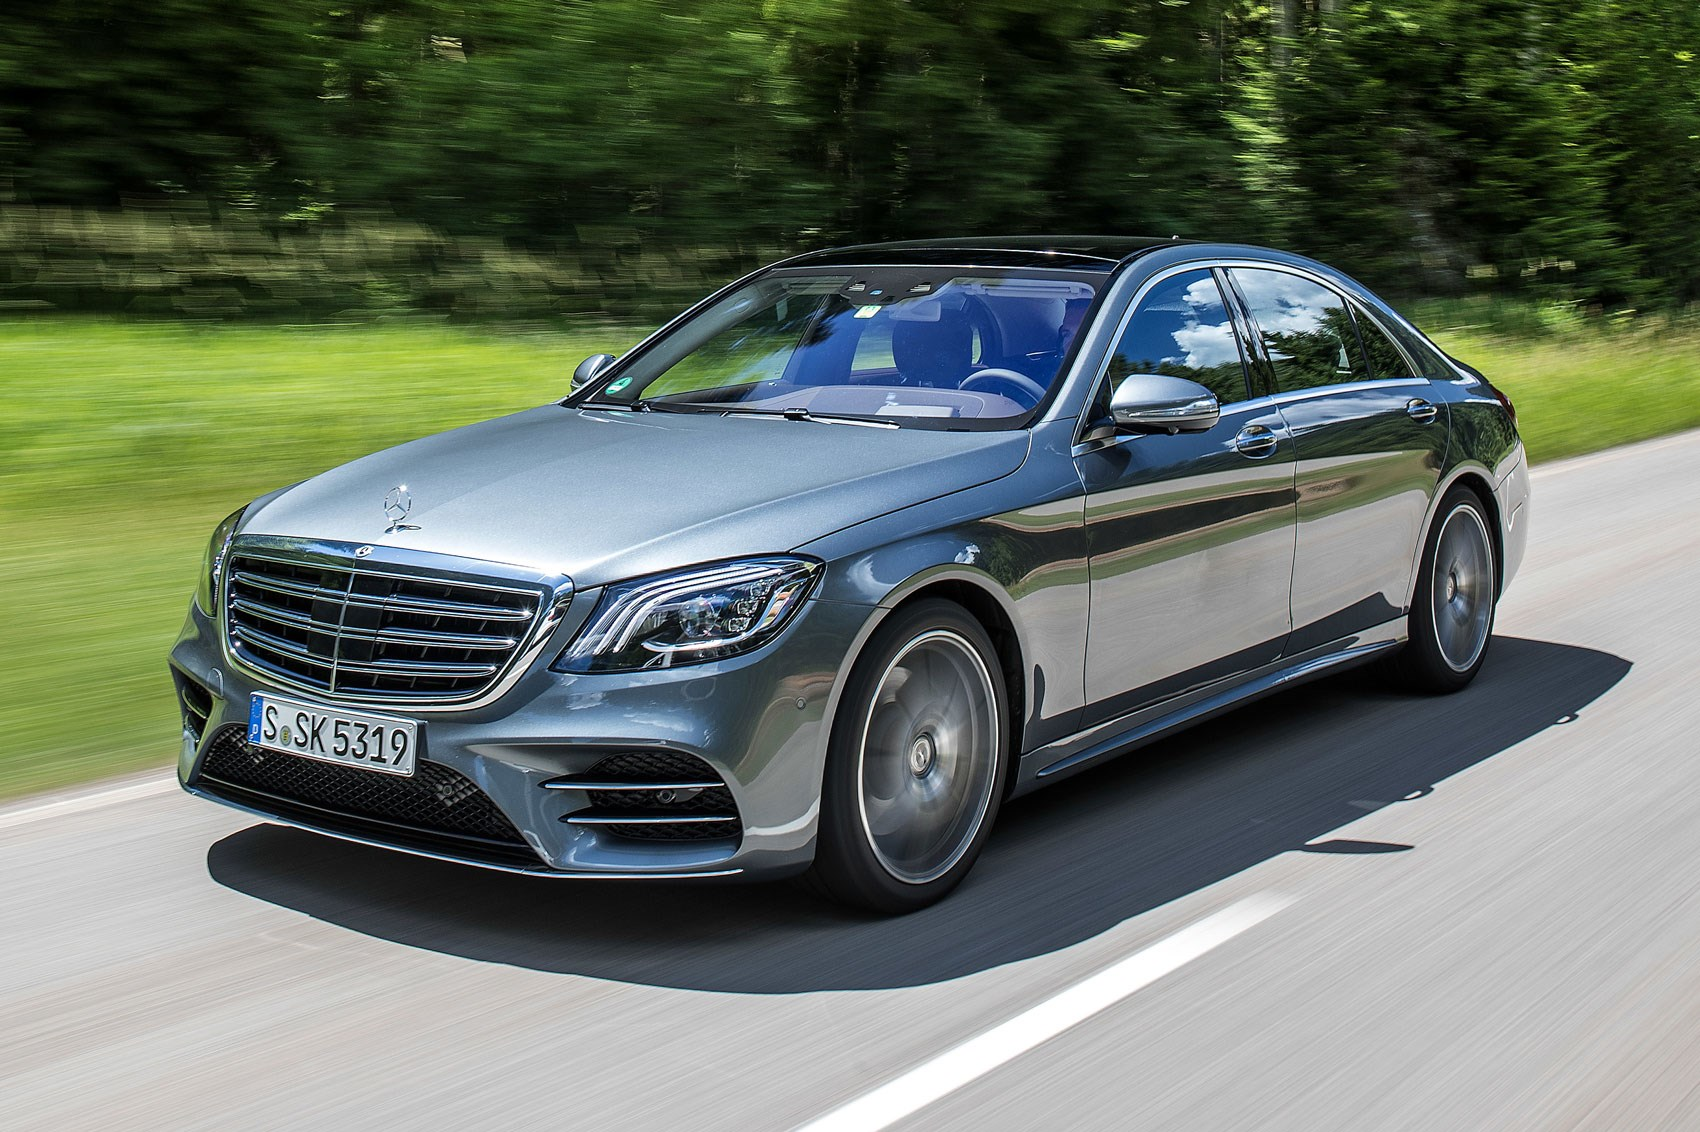 Mercedes Benz S500 L 2018 Review Too Clever For Its Own Good